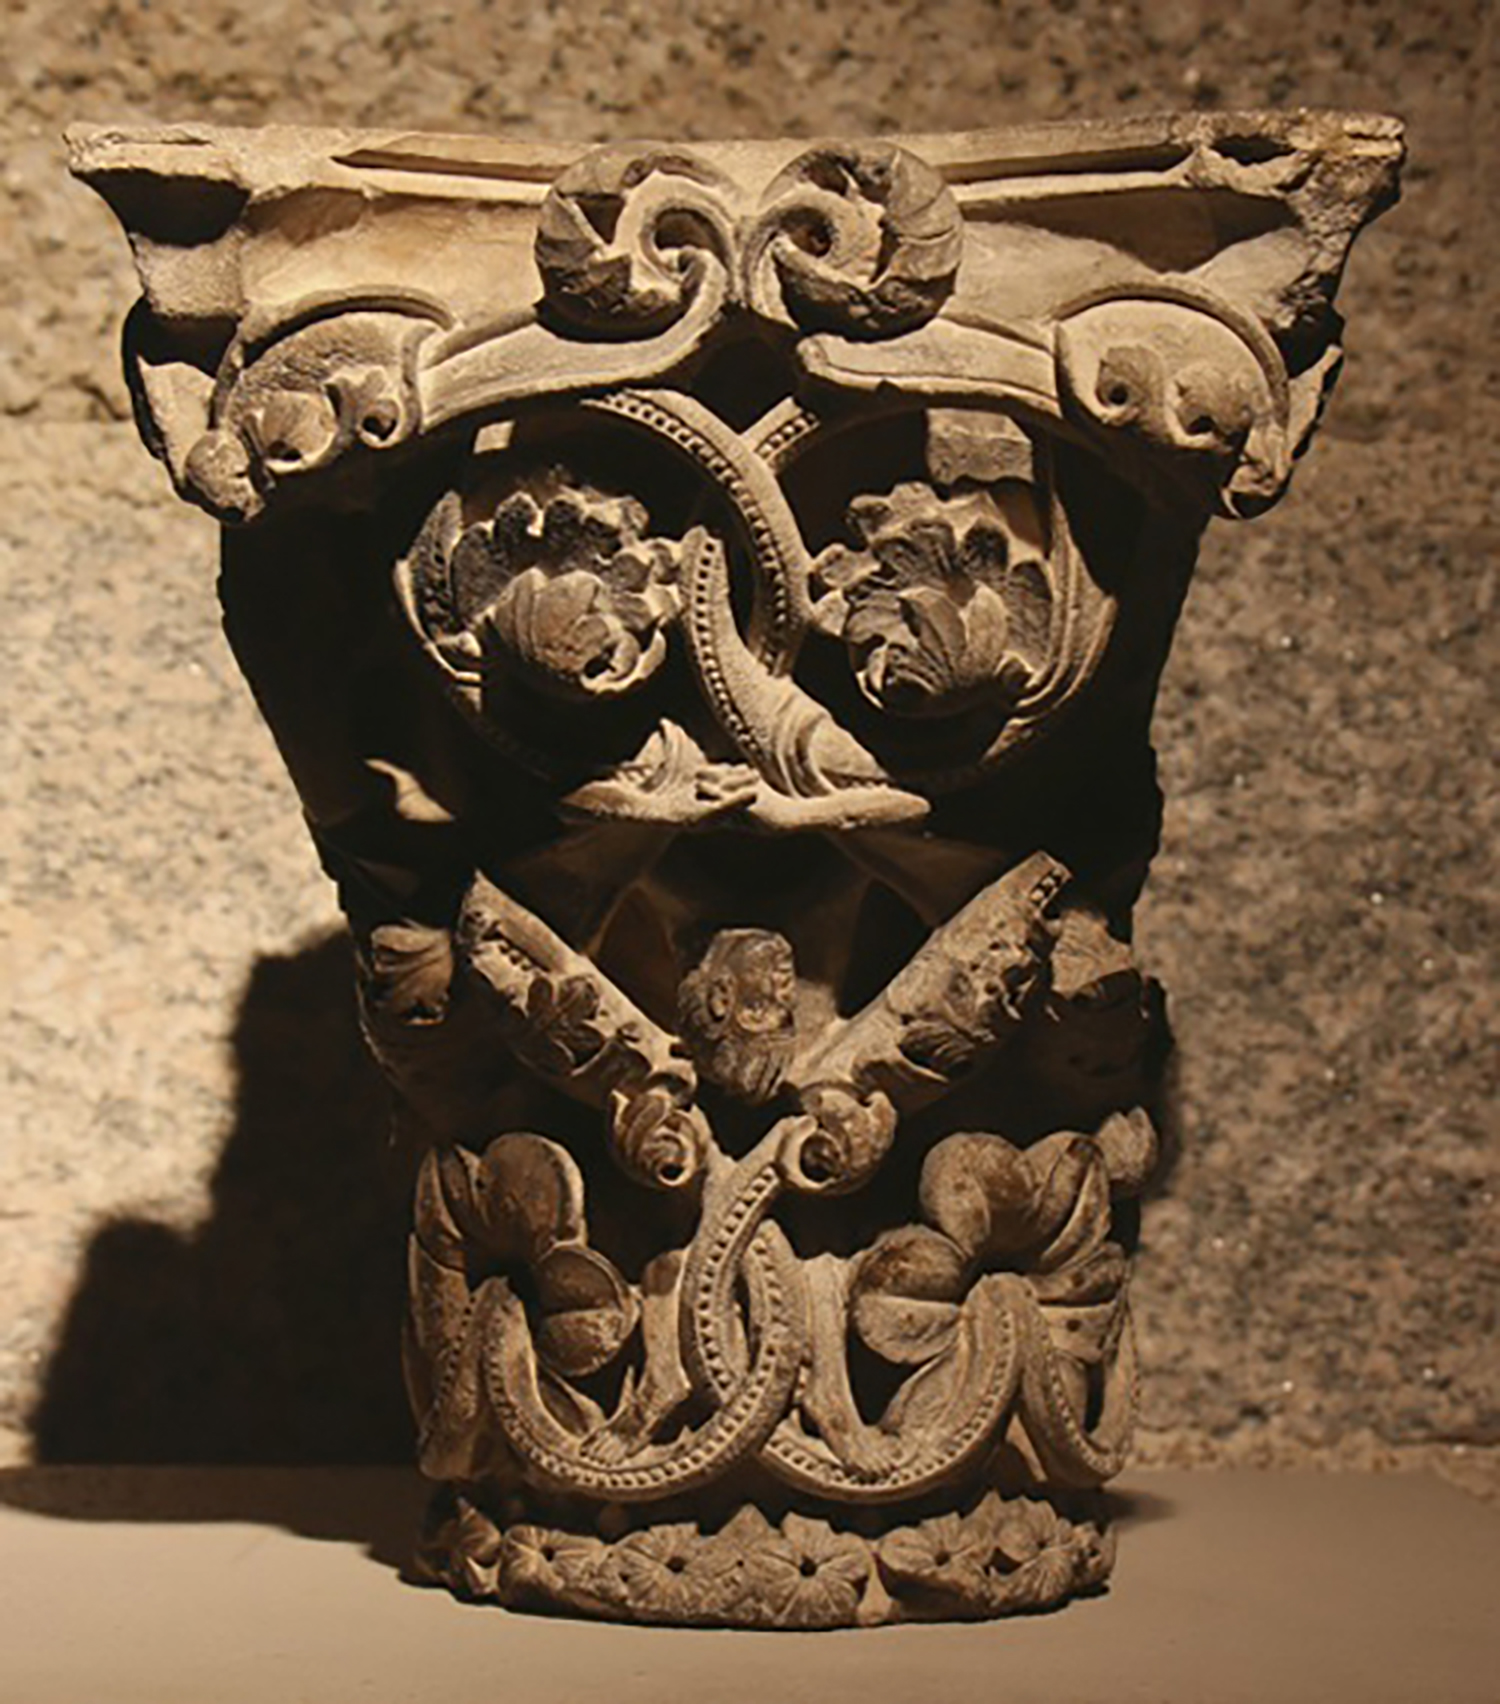 Figure 8: This limestone capital from Saint-Guilhem-le-Désert depicts a wide variety of figures, plant forms and ribbon patterns orchestrated in playful compositions. Glencairn Museum 09.SP.106.